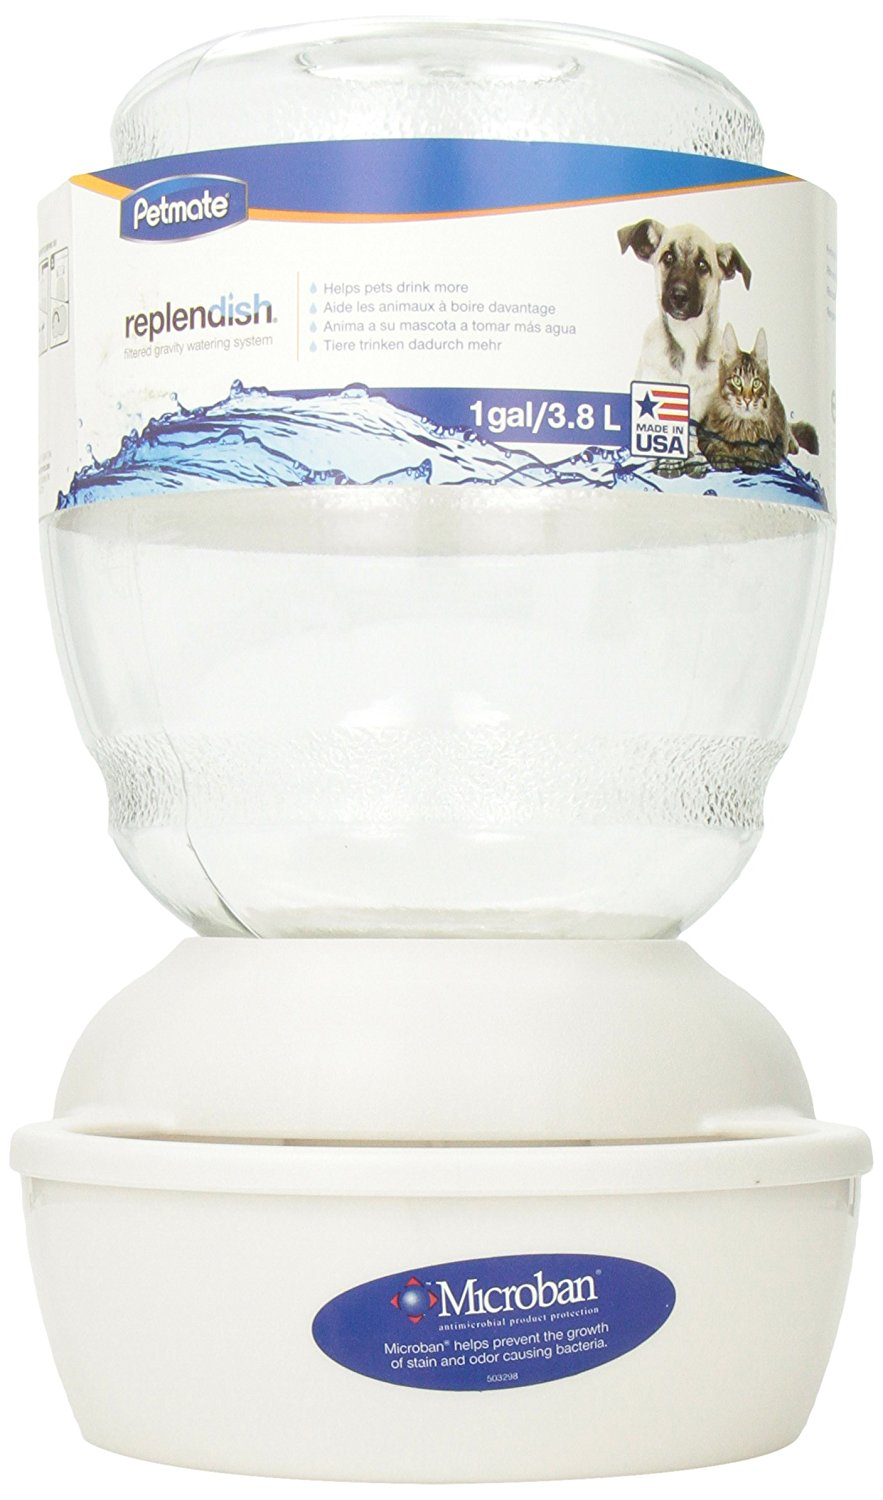 Petmate Replendish Waterer with Microban